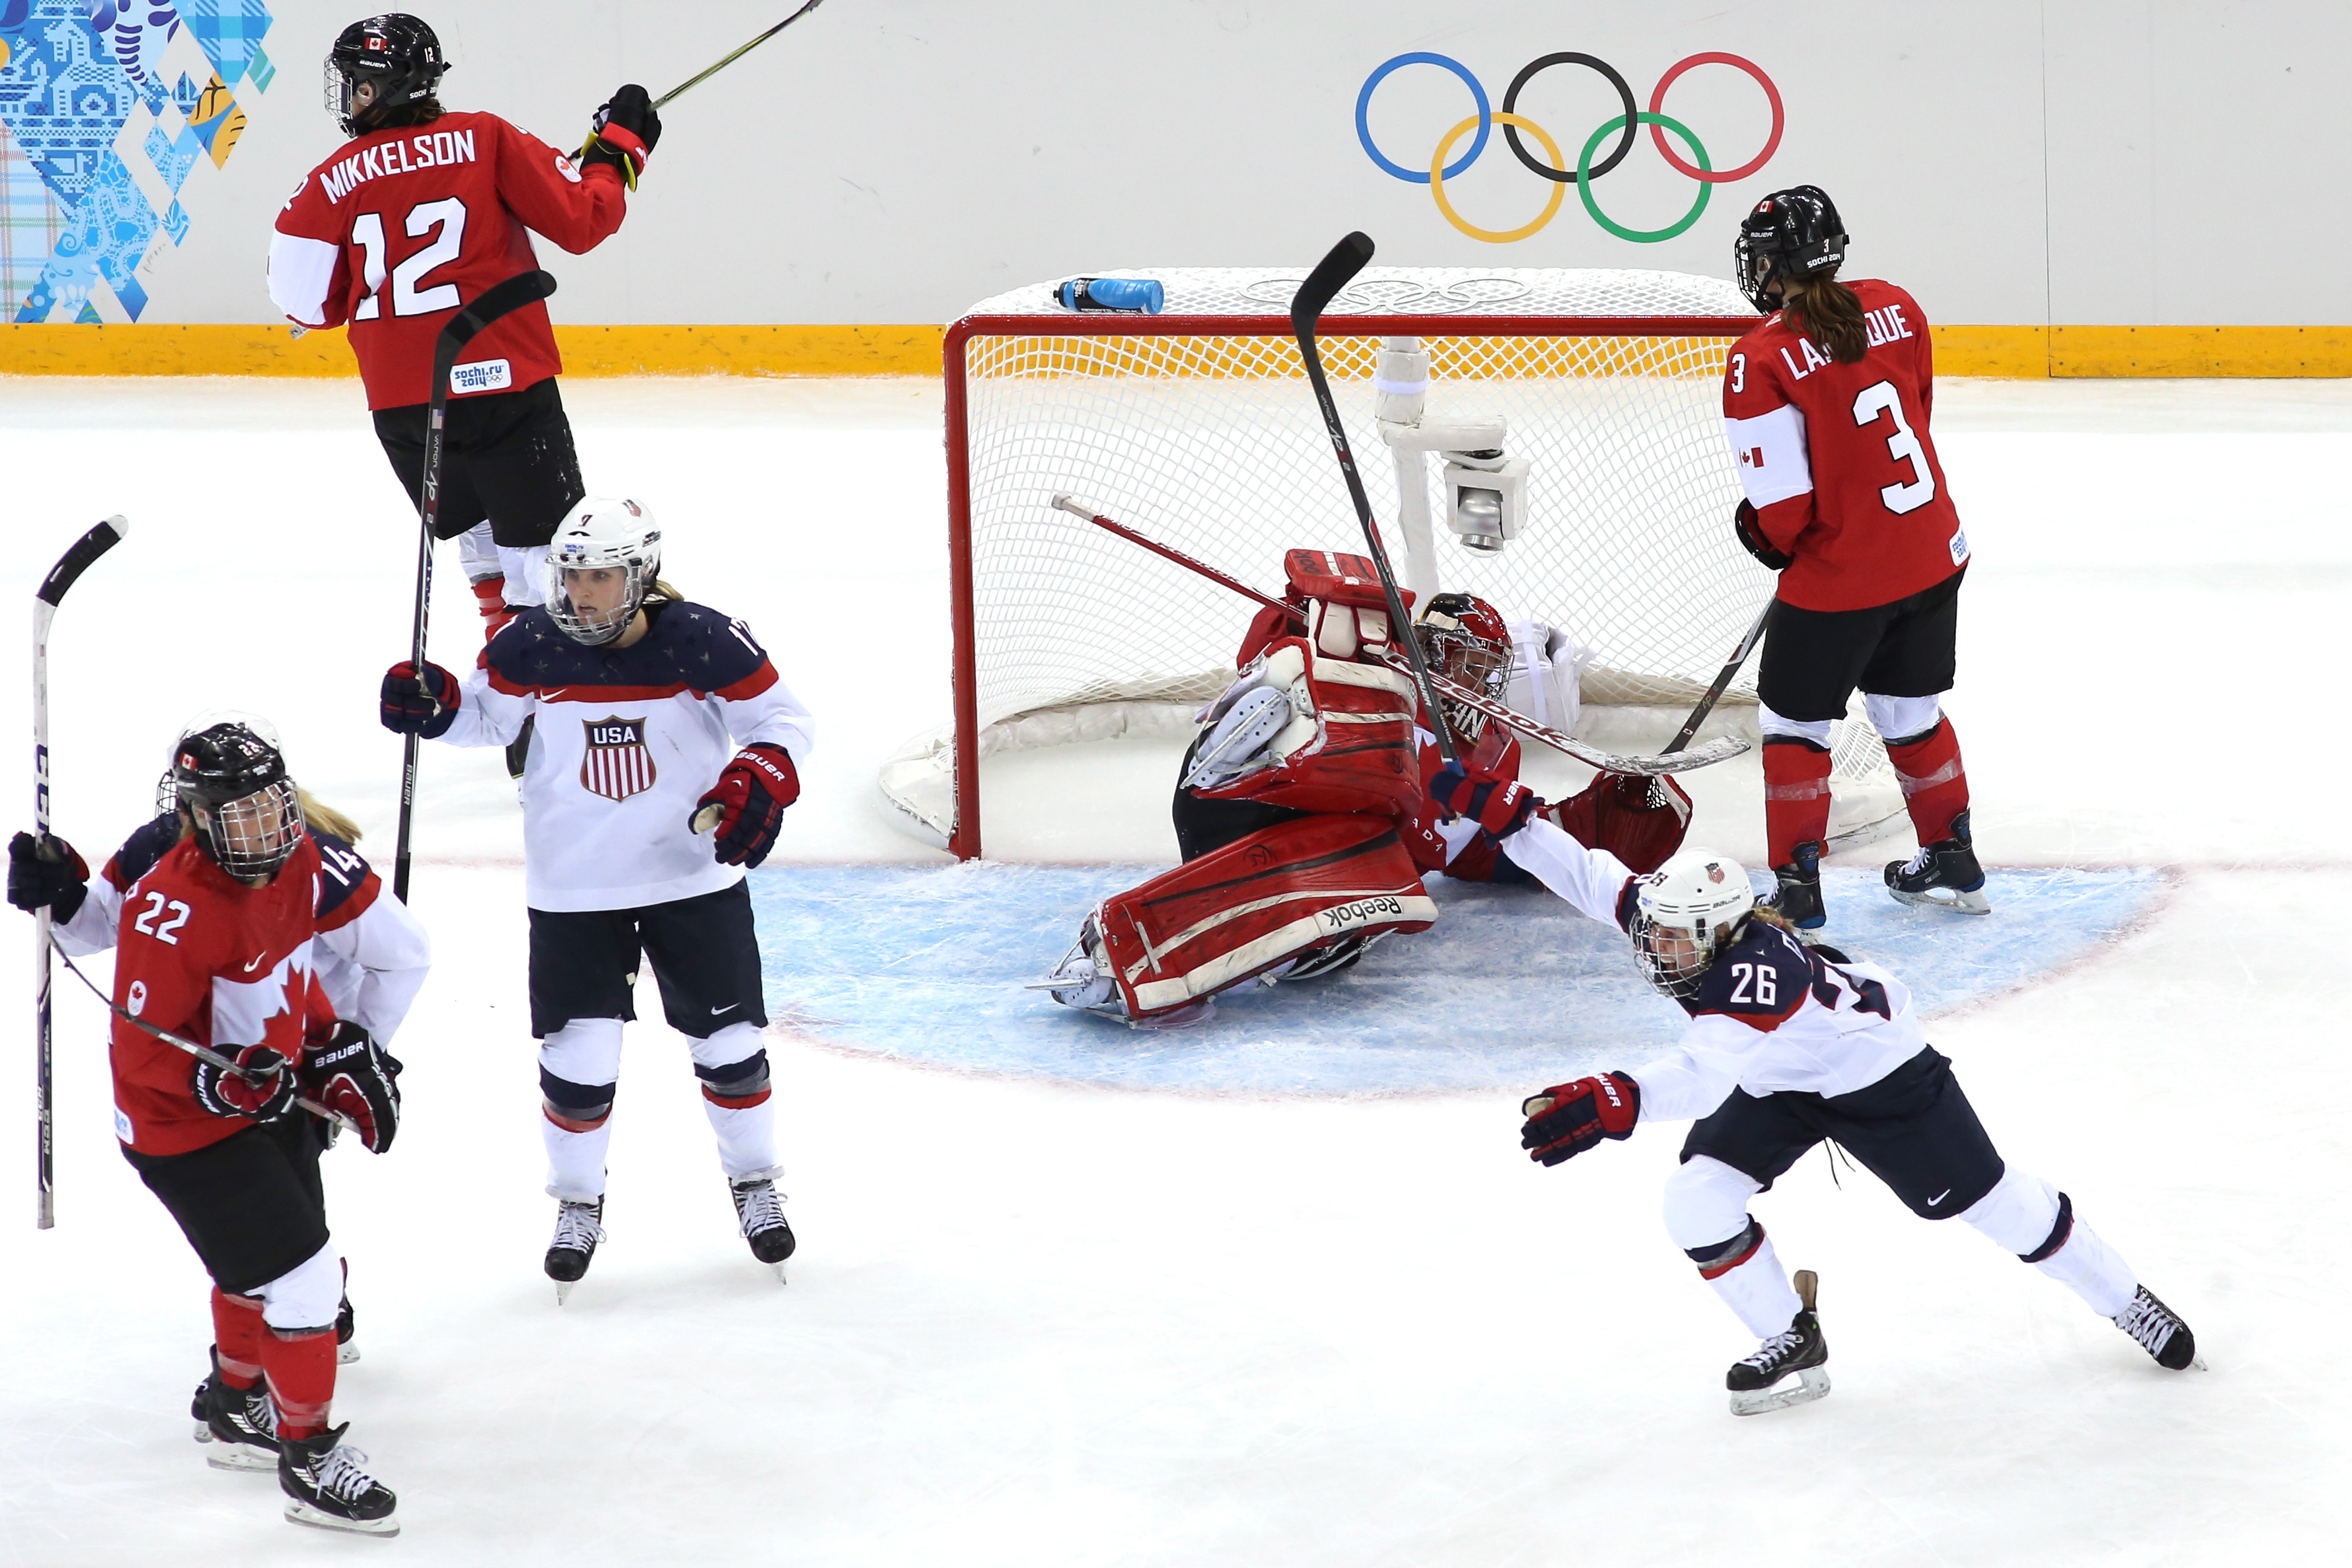 Kendall Coyne #26 of the United States celebrates as #32 Charline Labonte of Canada allows a goal by Anne Schleper #15 in the third period during the U.S.-Canada Women's Ice Hockey Preliminary Round Group A game. (Bruce Bennett/Getty Images)